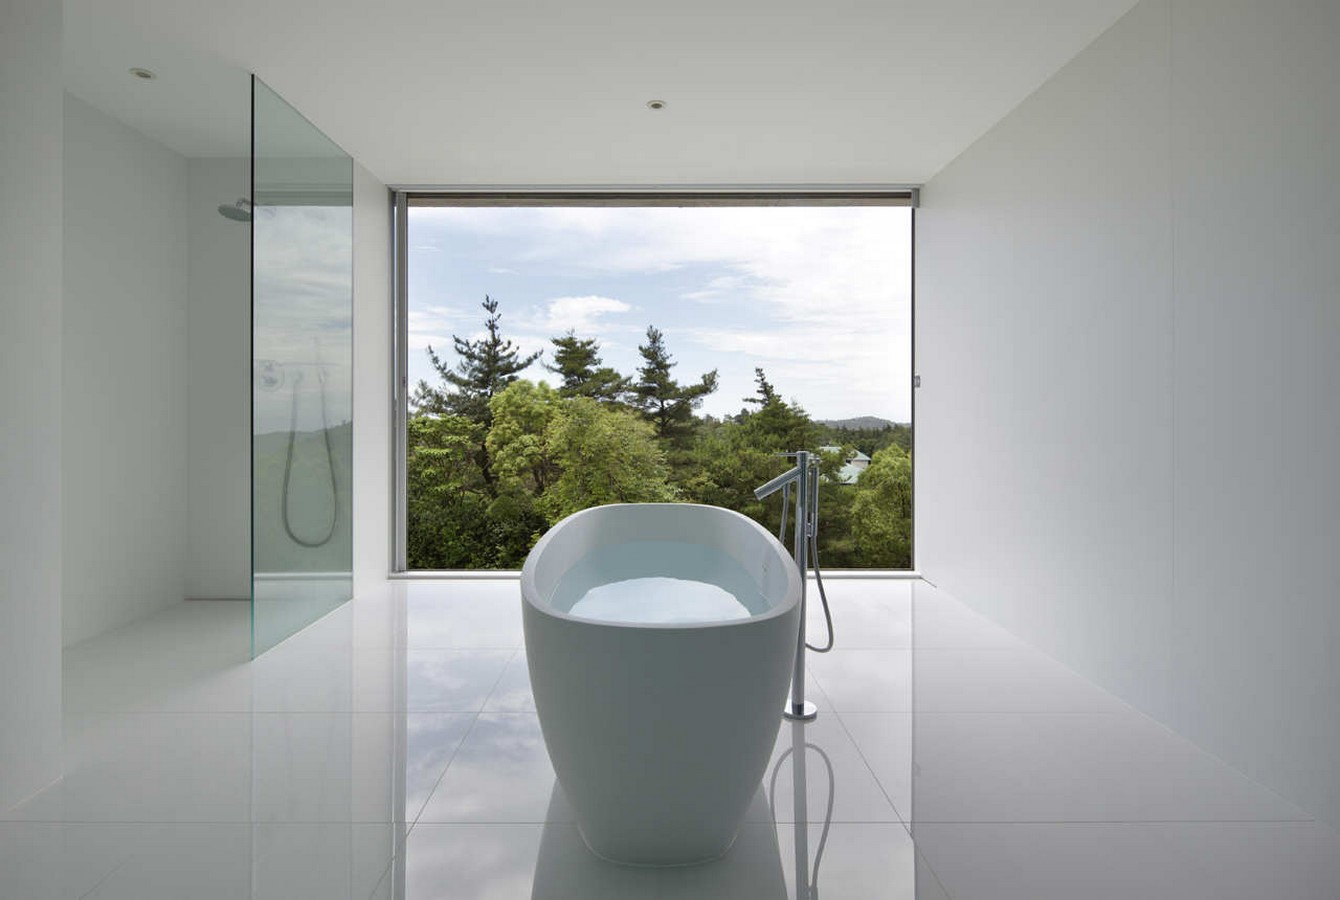 Bathroom with a View - Sheet6